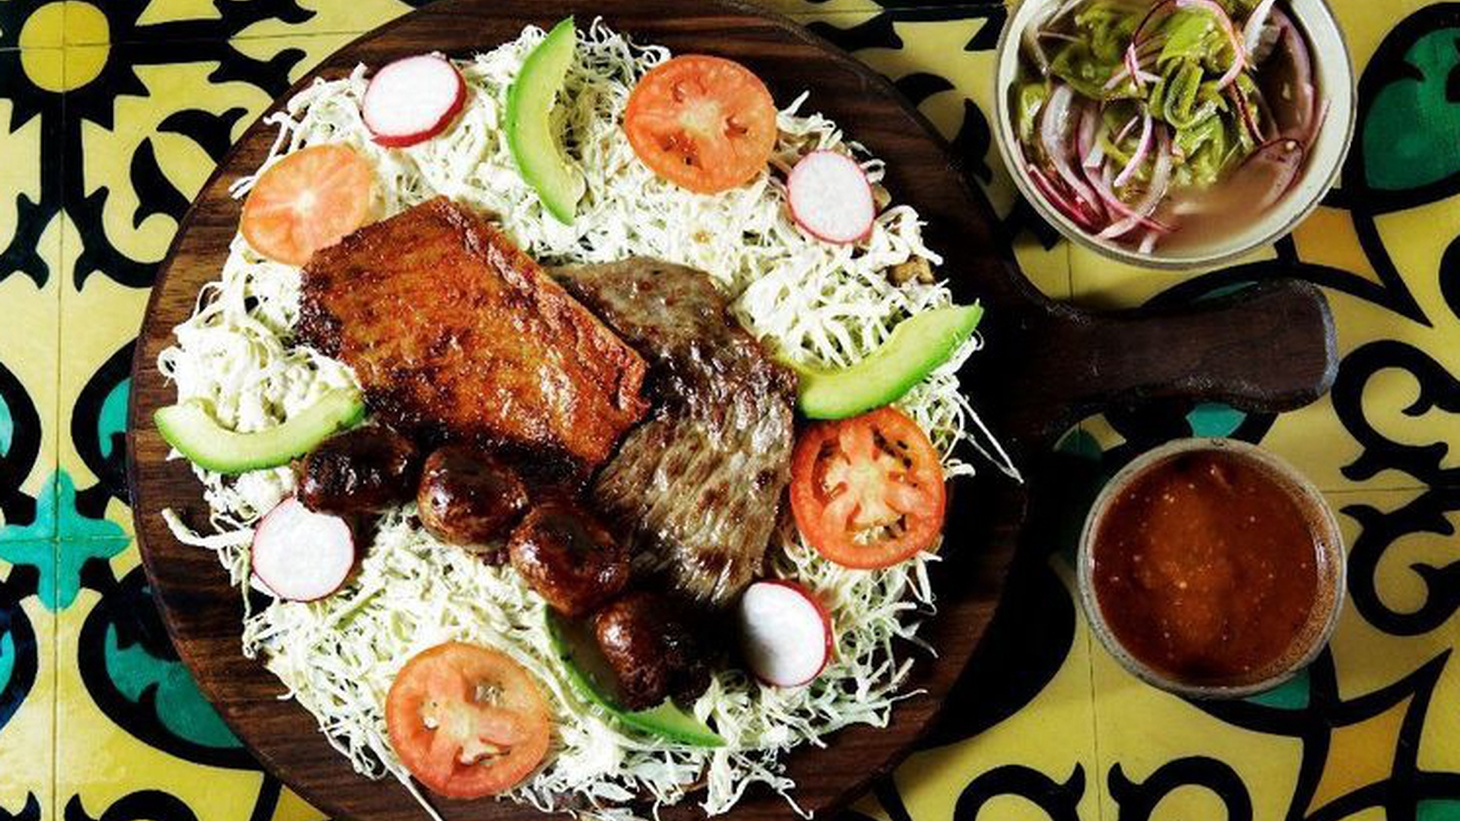 Tlayuda is among the Oaxacan classics on Madre's menu.